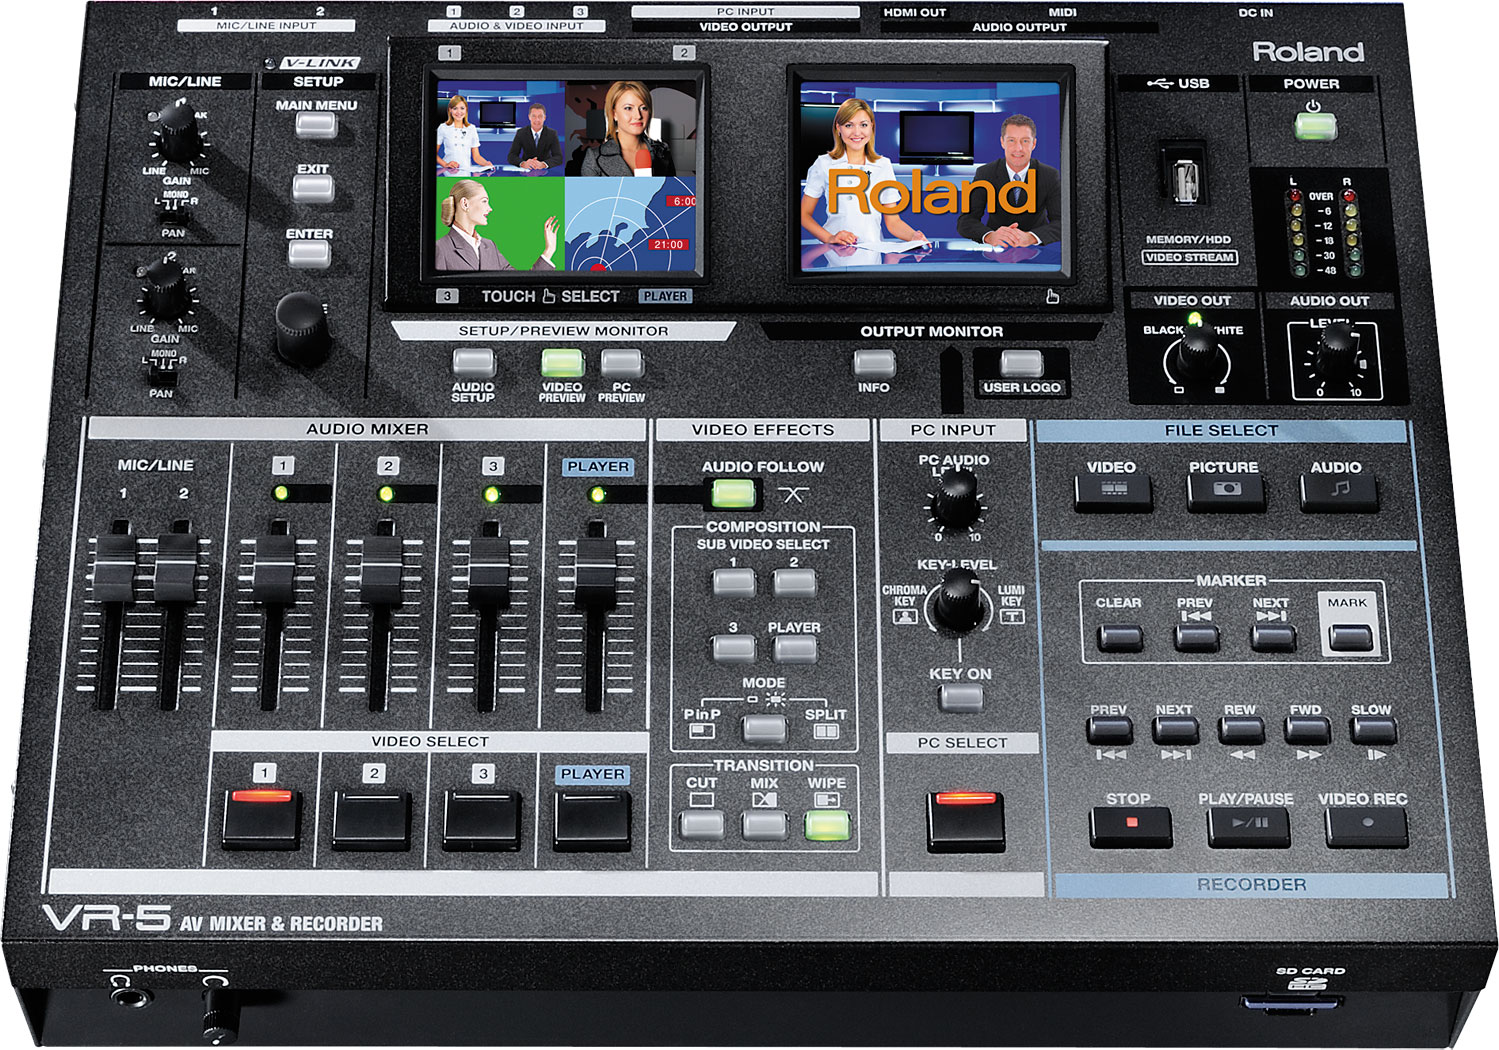 Roland Pro A V Vr 5 Av Mixer Recorder Usb To Rca Easy Capture 20 Dvr 1 Channel